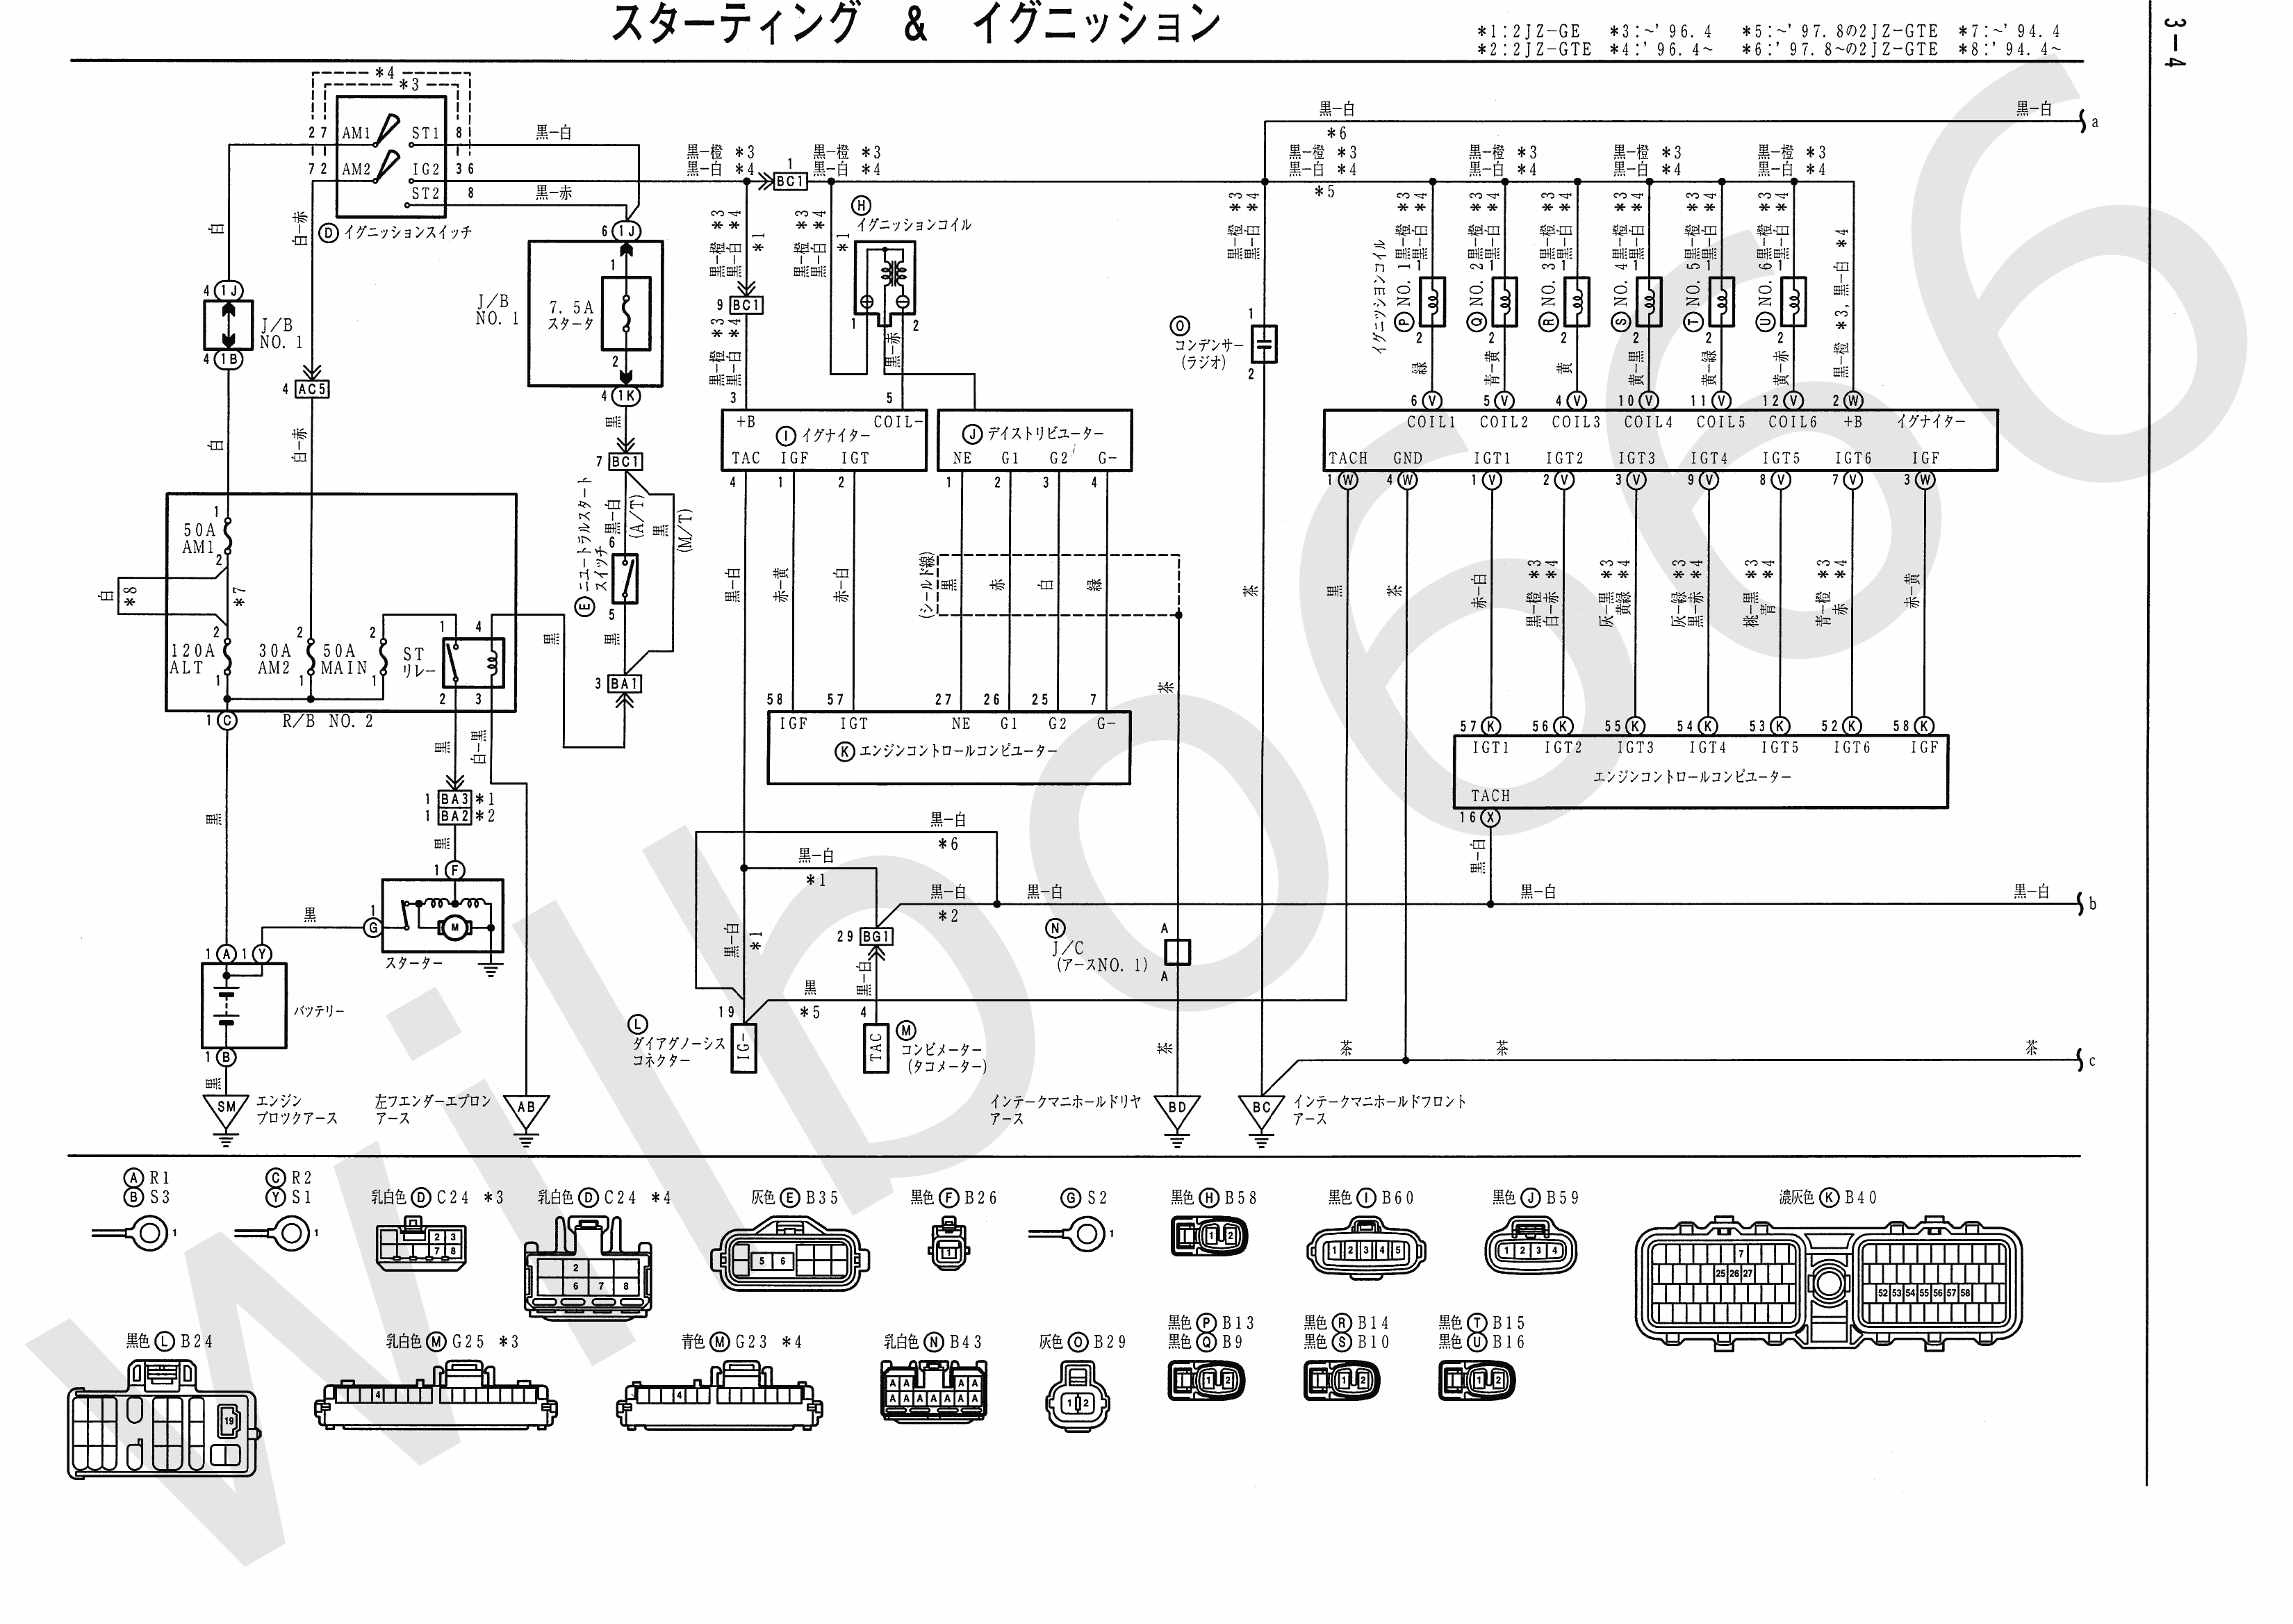 JZA80 Electrical Wiring Diagram 6742505 3 4 wilbo666 2jz ge jza80 supra engine wiring ge wiring diagrams at soozxer.org